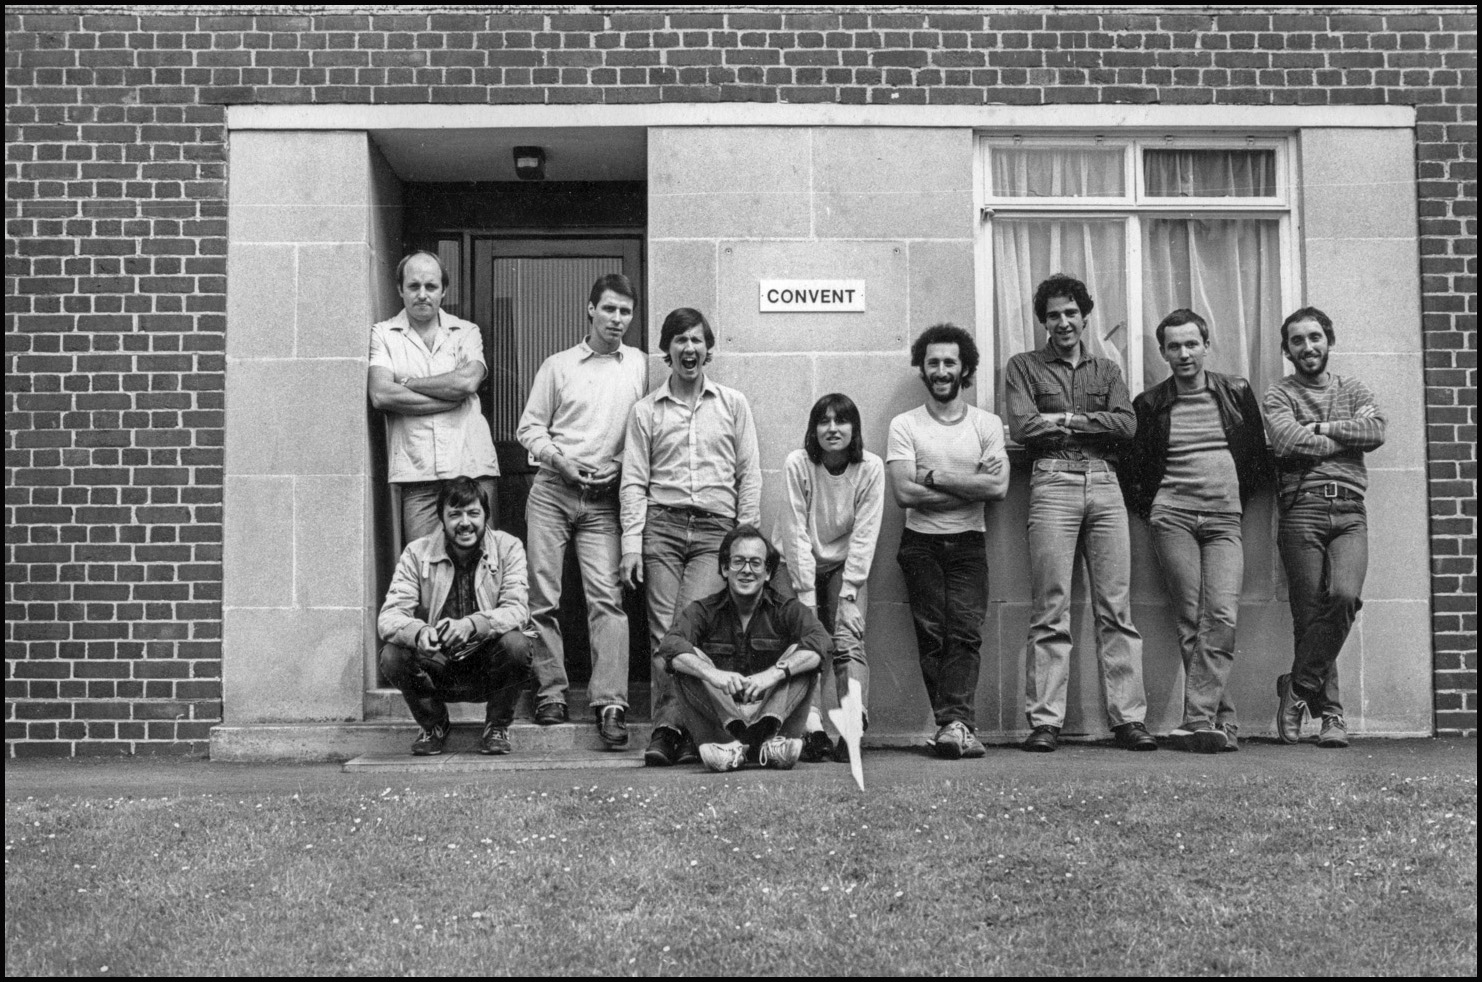 Network's founding members and staff on a retreat, September 1982. Left to right, Barry Lewis, Chris Davies, Laurie Sparham, John Sturrock, Judah Passow, Sue Trangmar (Picture Editor) Mike Abrahams, Mike Goldwater, Martin Slavin (Managing Editor) and Steve Benbow.